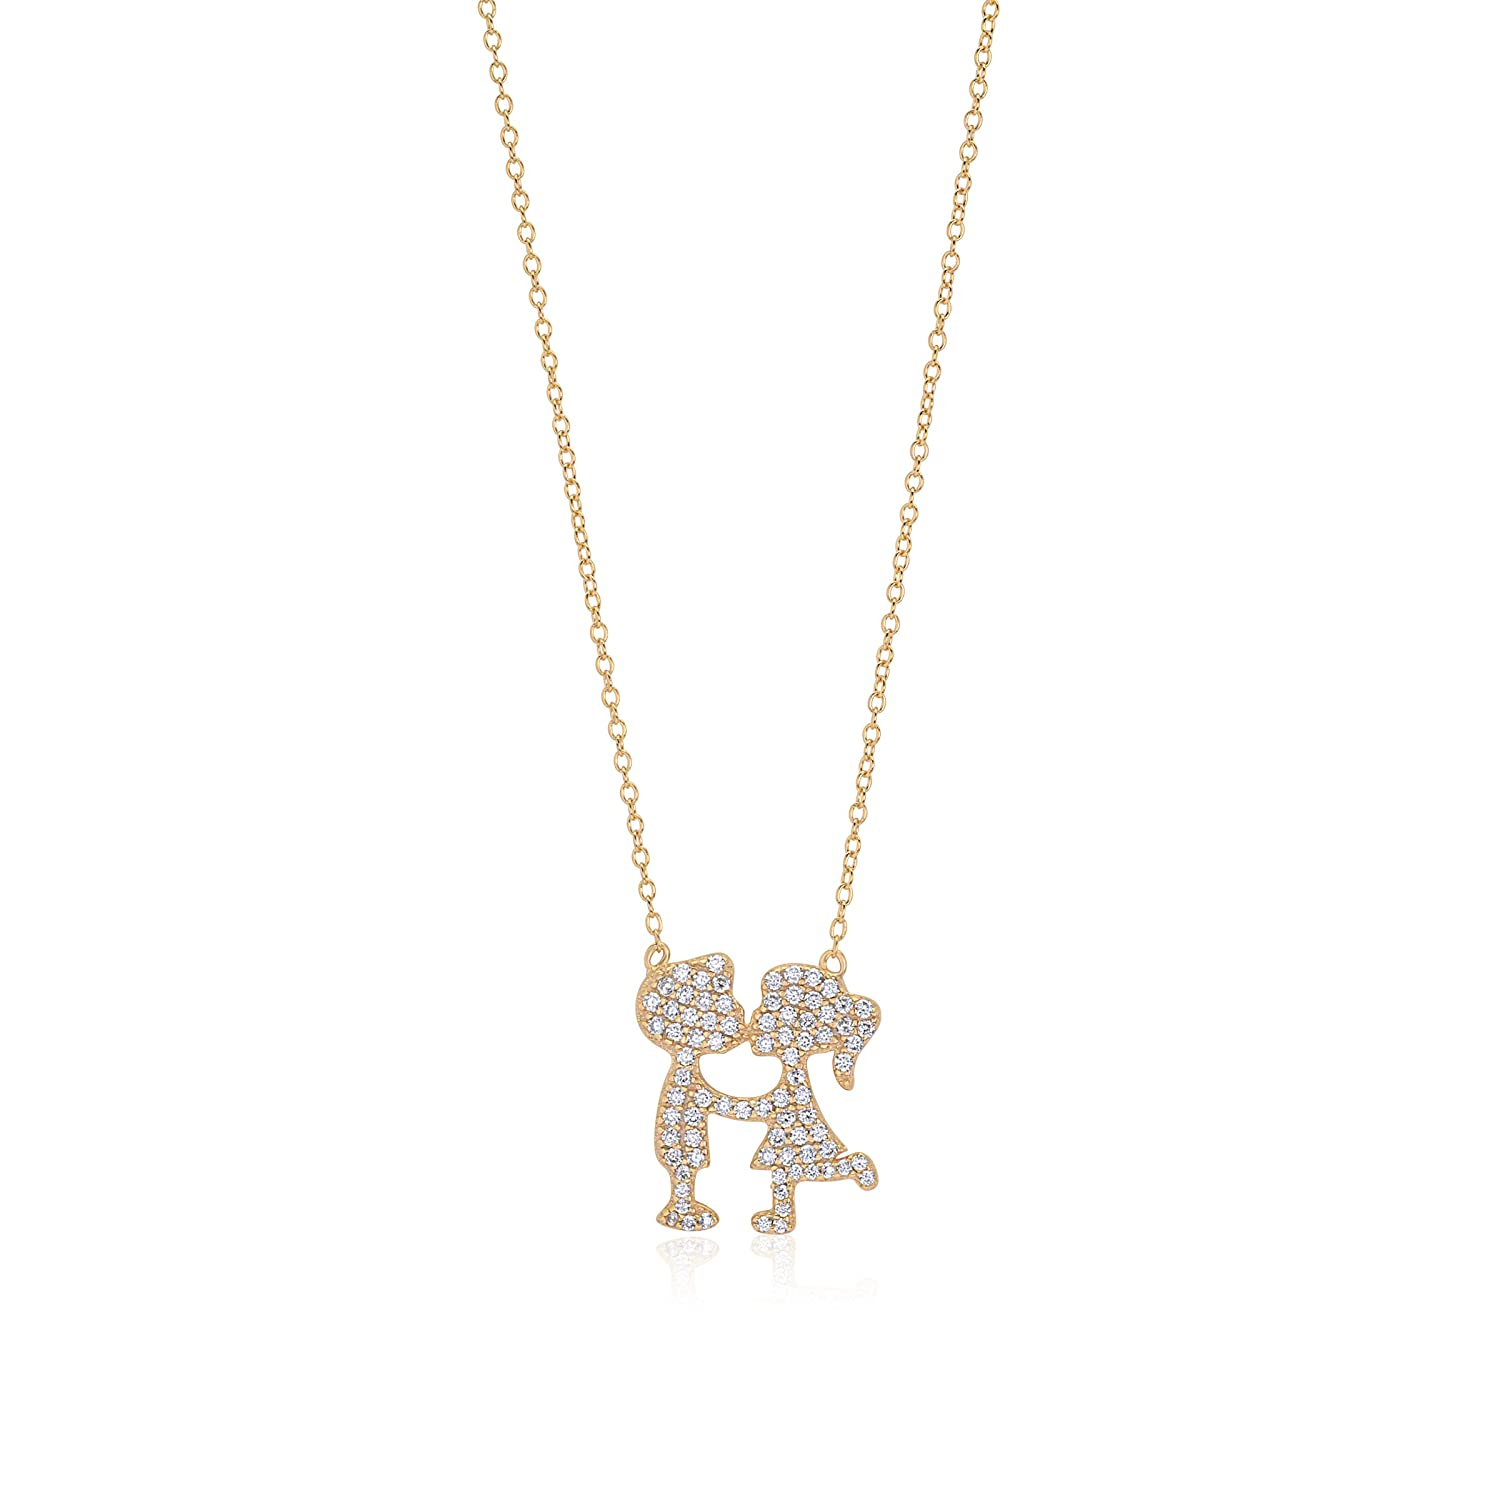 UNICORNJ Sterling Silver 925 Pave CZ Girl Boy Kissing Silhouette Pendant Necklace Yellow Gold Plated 18 Italy